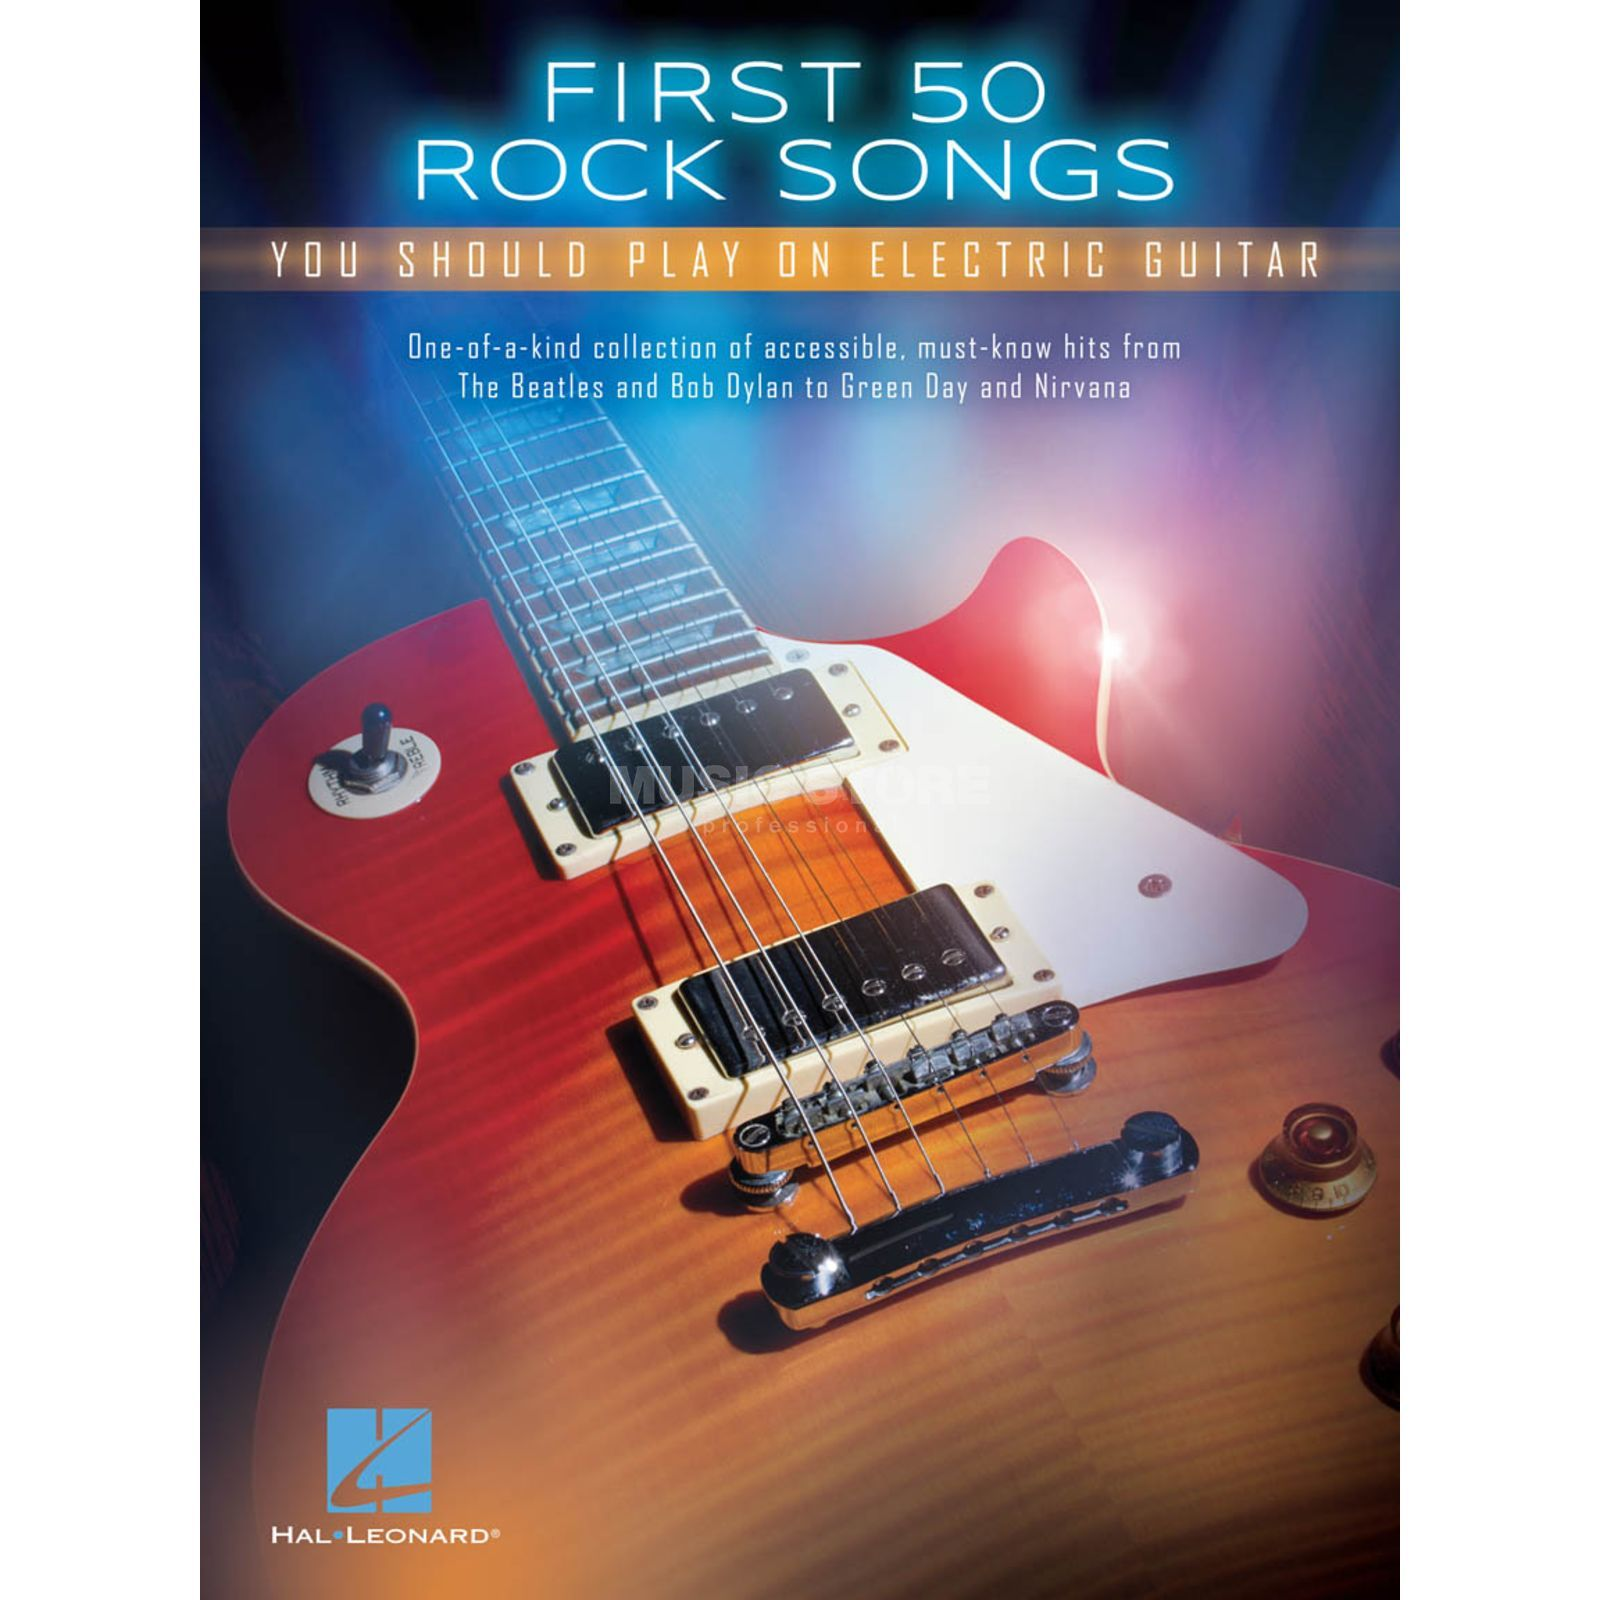 Hal Leonard First 50 Rock Songs You Should Play On Electric Guitar Produktbillede